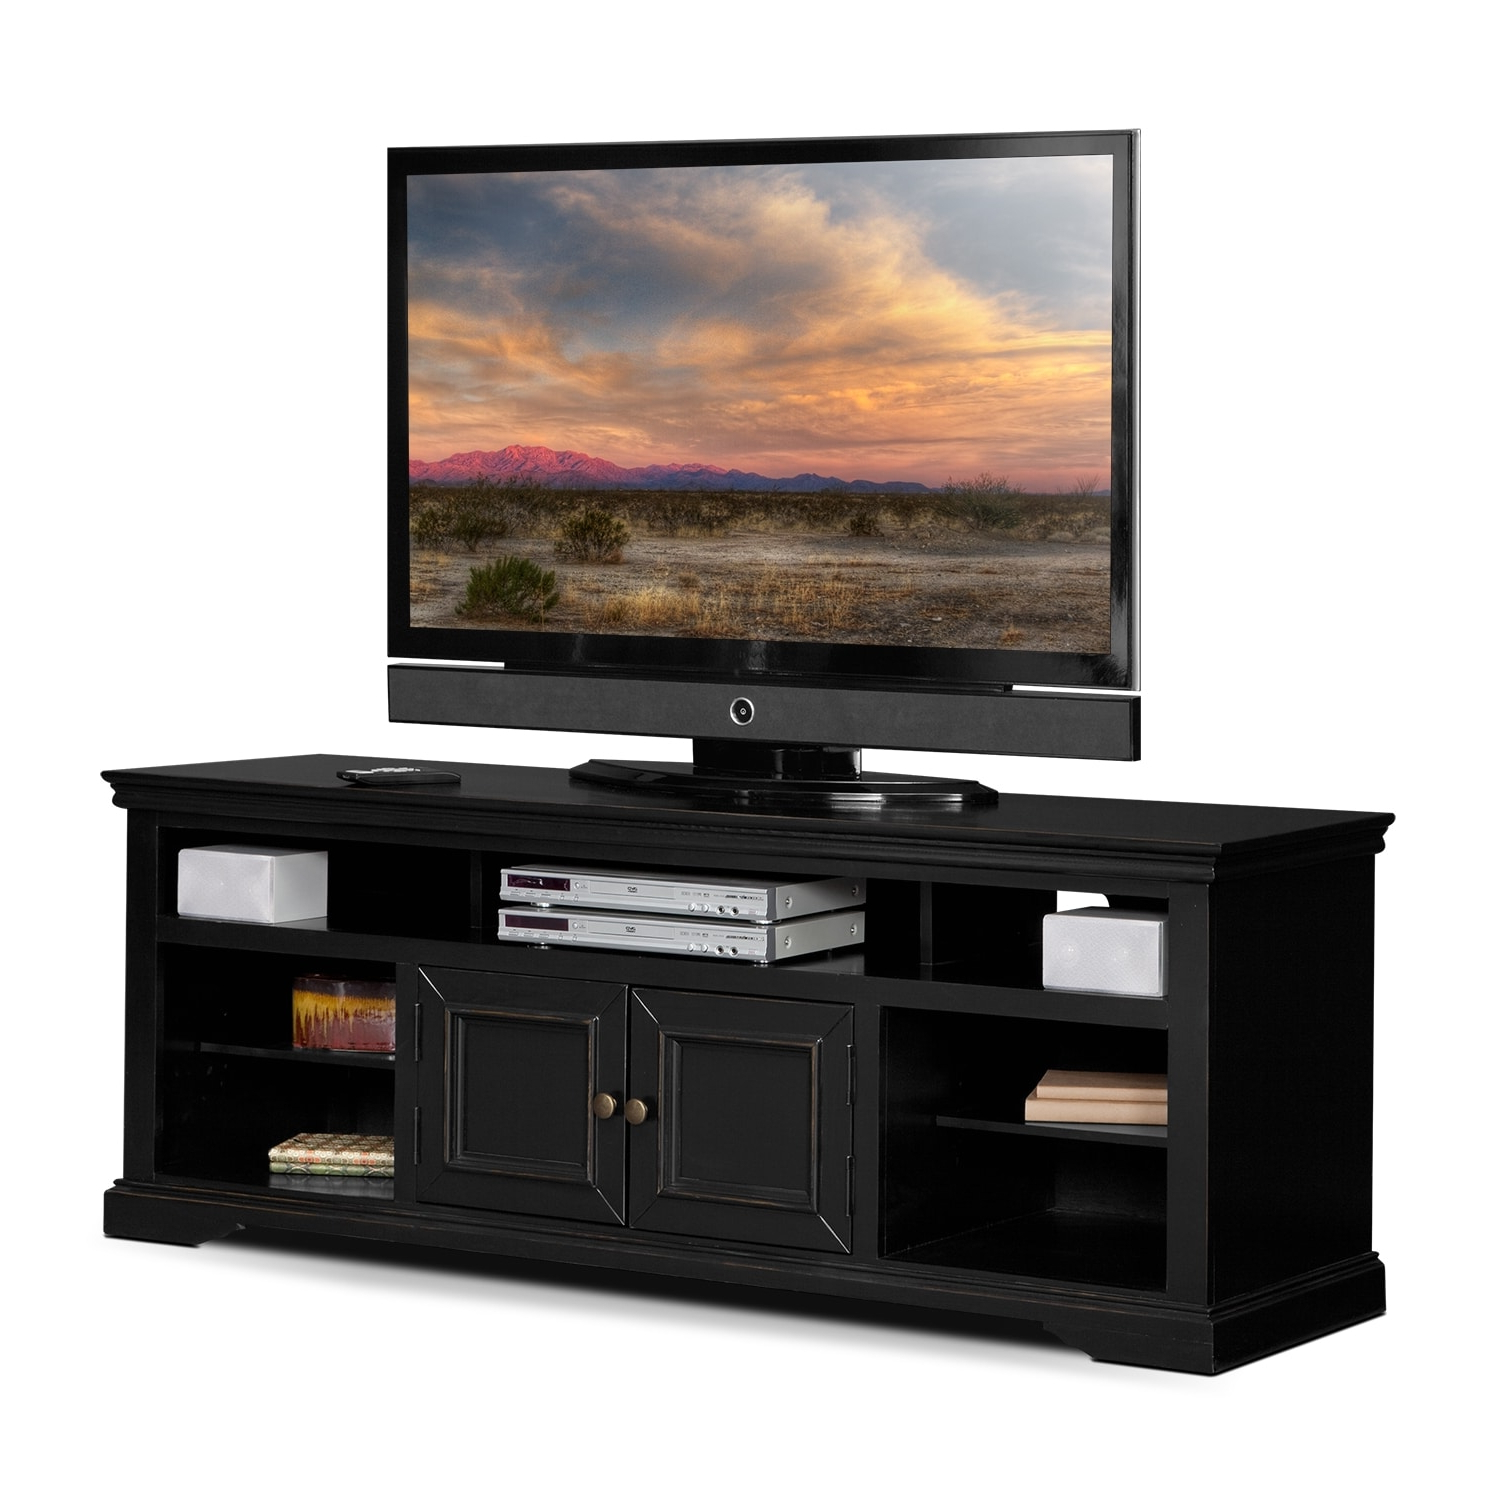 """Lederman Tv Stands For Tvs Up To 70"""" Within Well Liked Jenson 70"""" Tv Stand – Black (View 8 of 20)"""